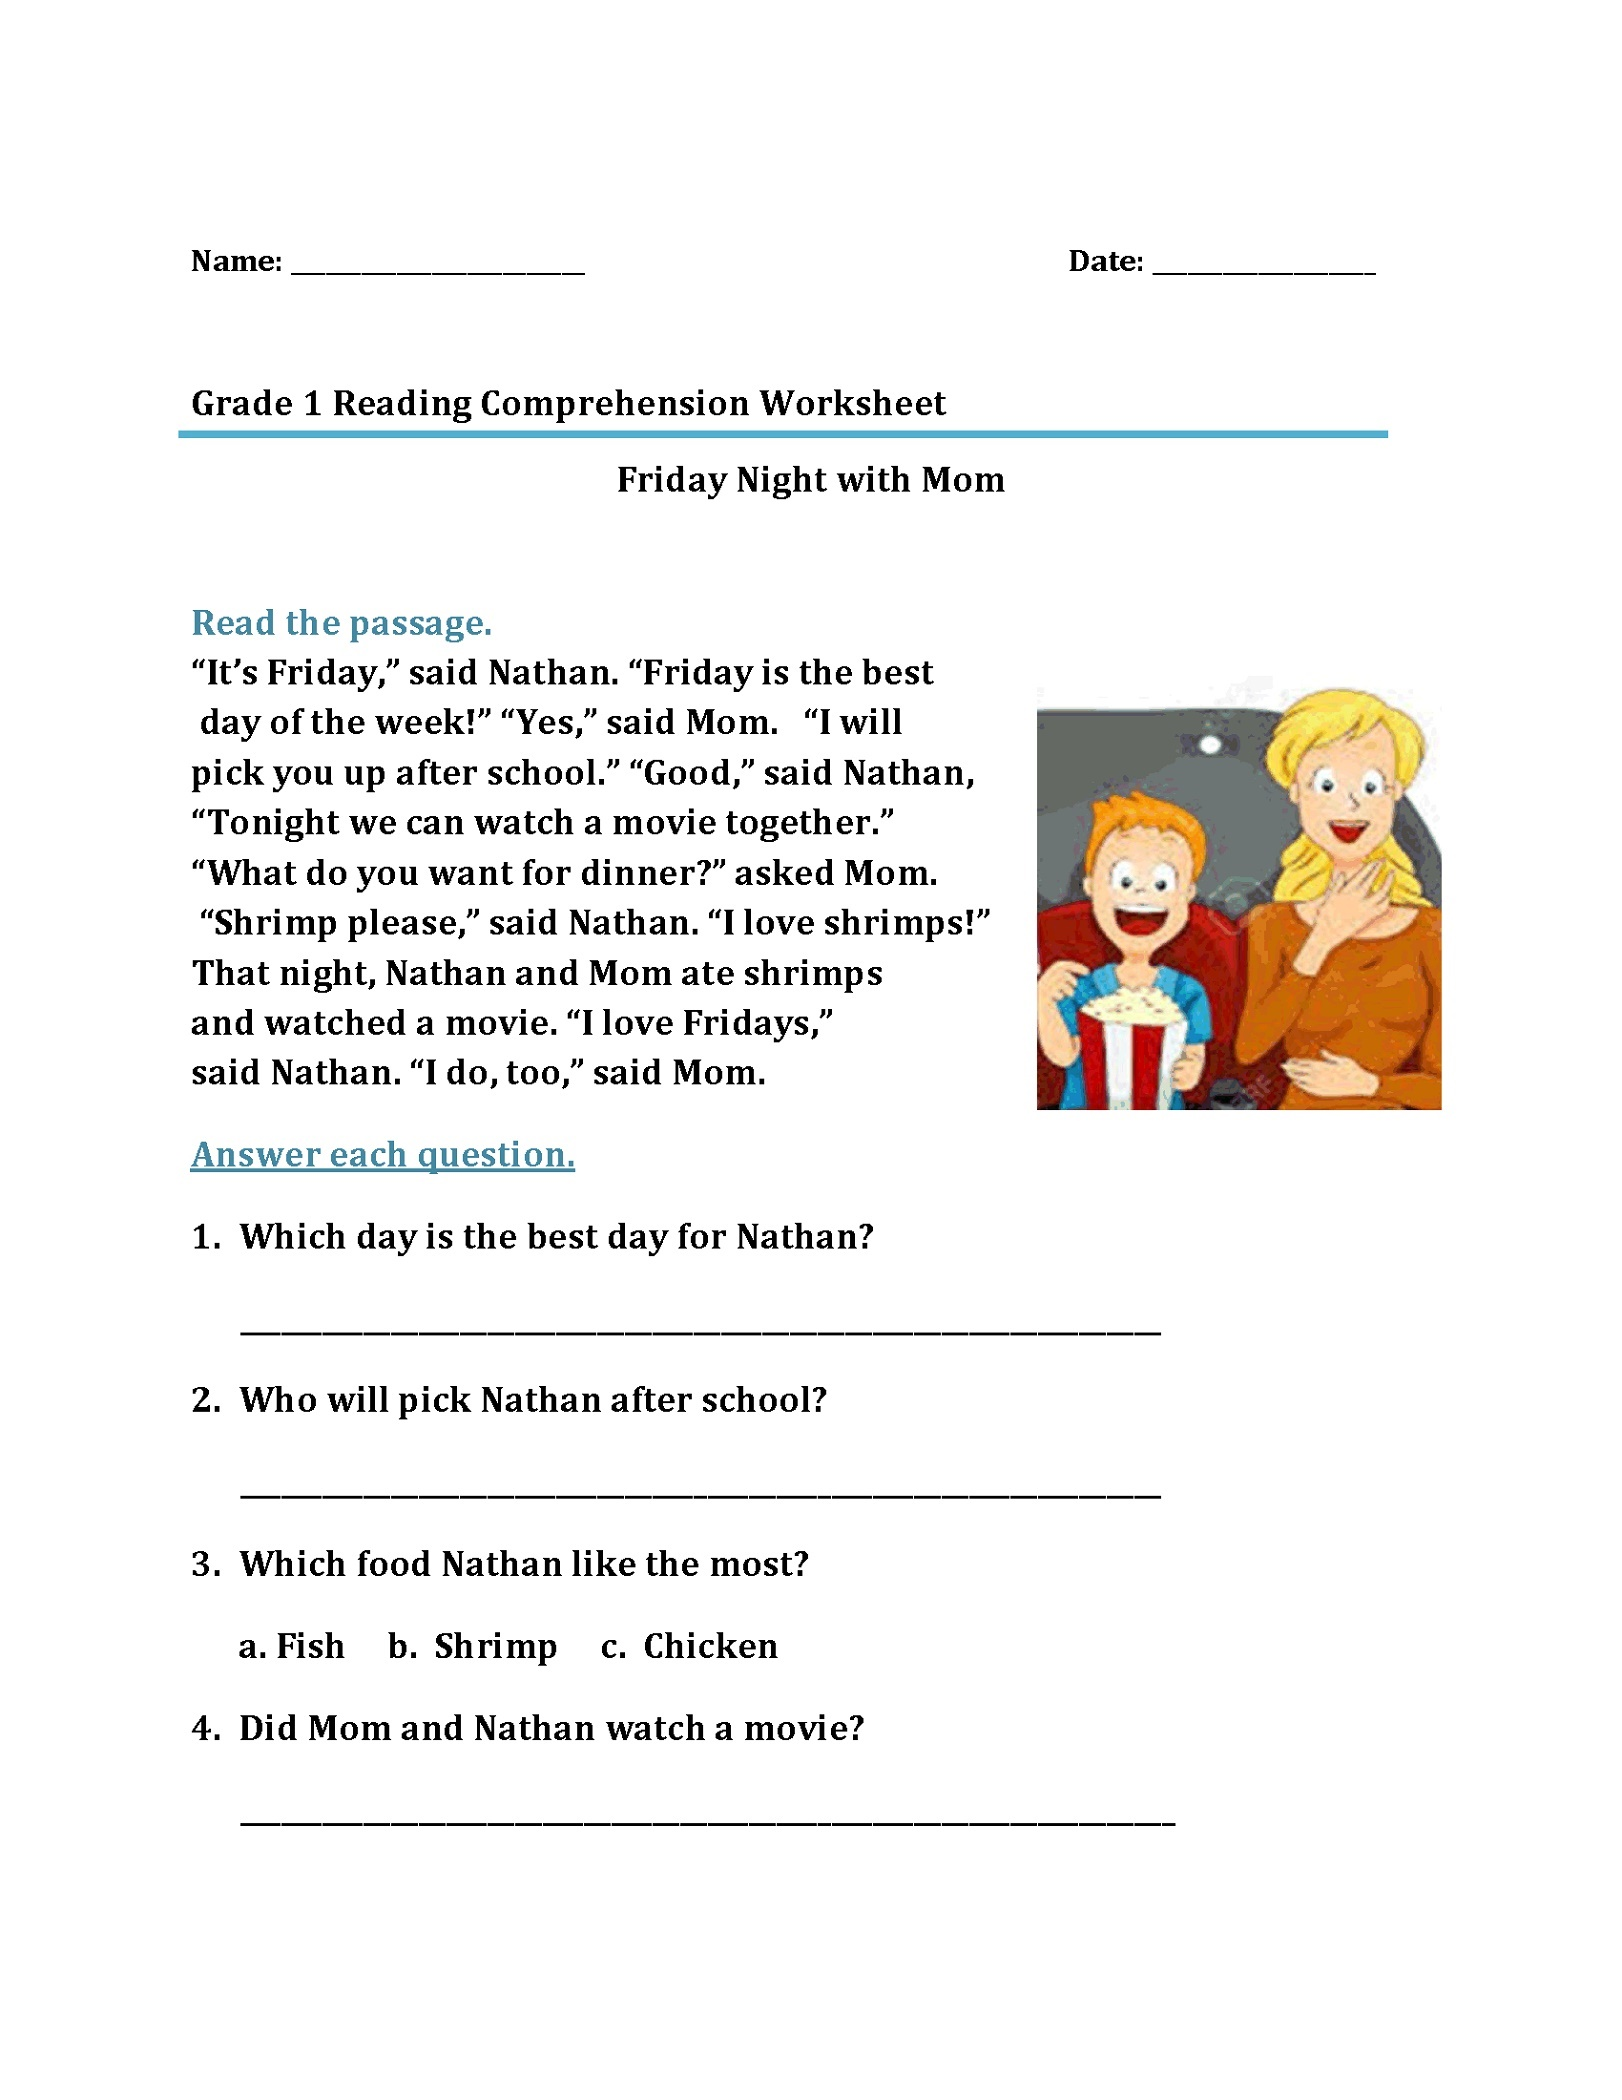 Cold Reading Worksheet